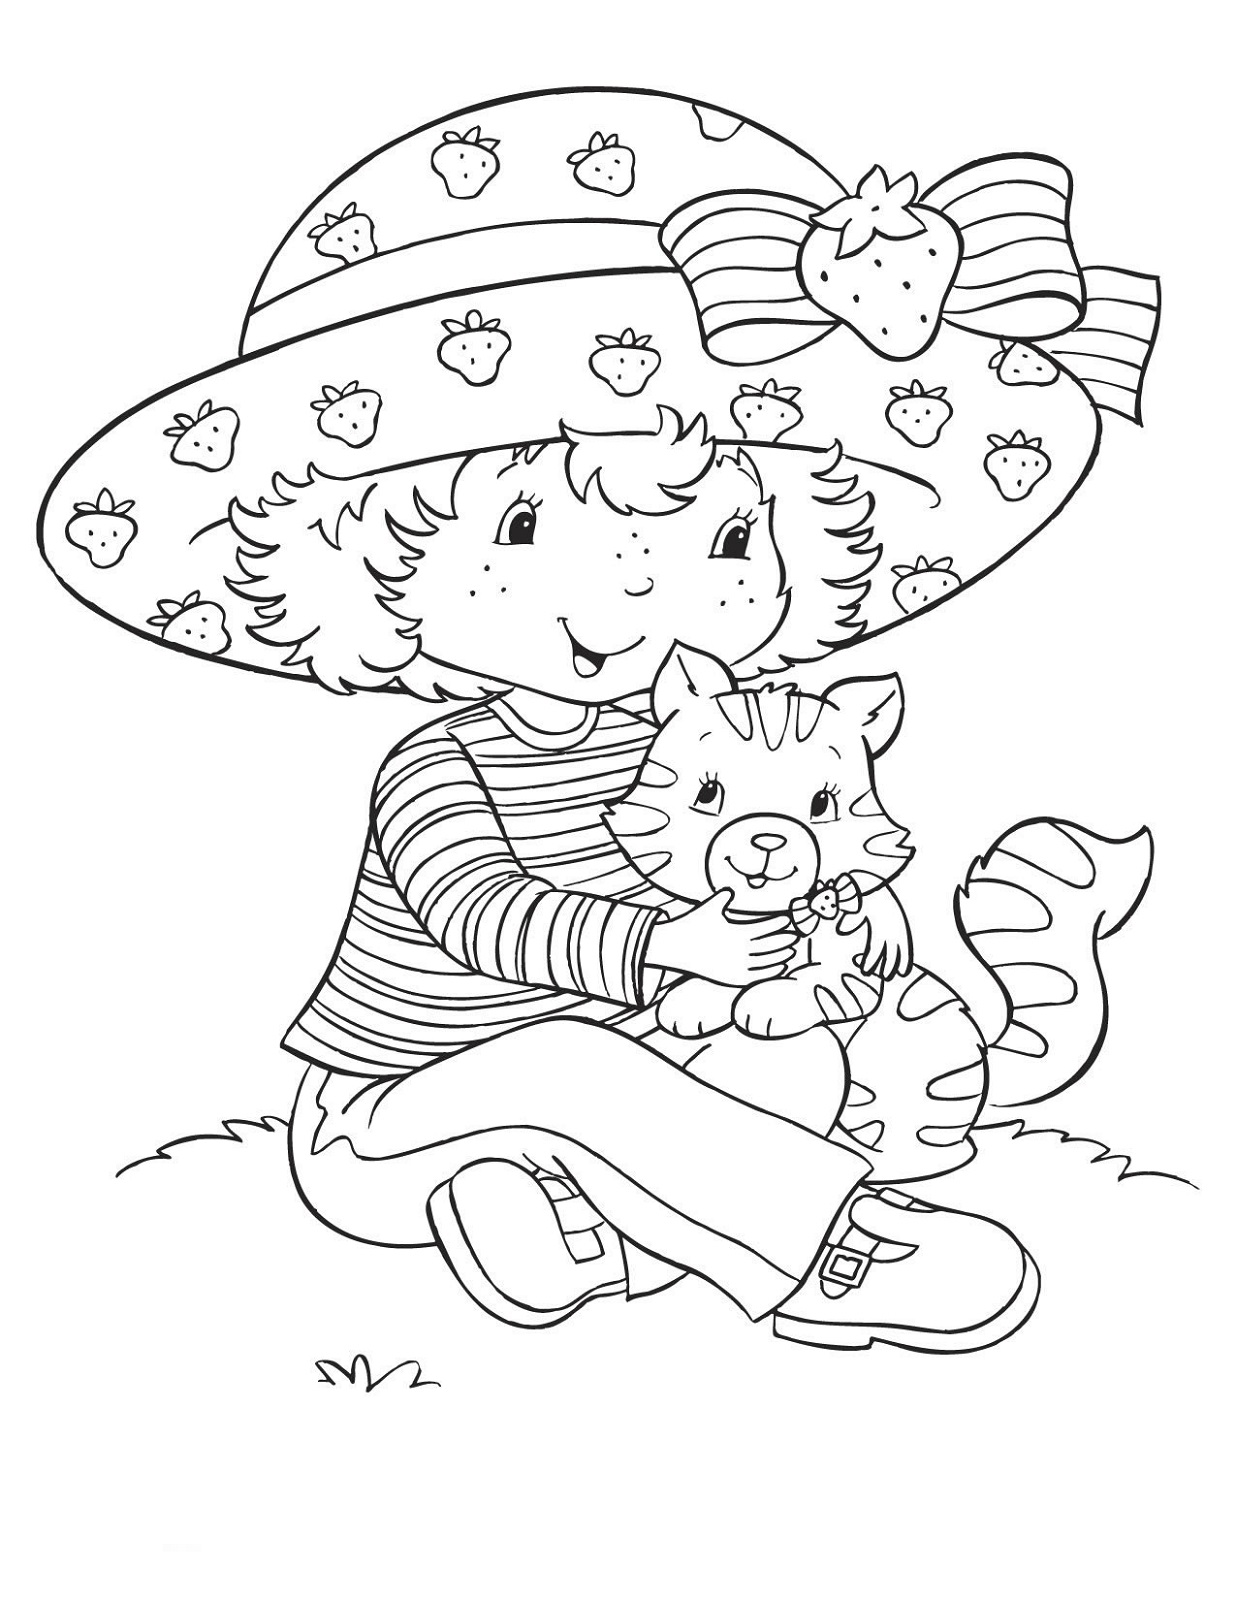 Strawberry Shortcake Coloring Pages Learning Printable